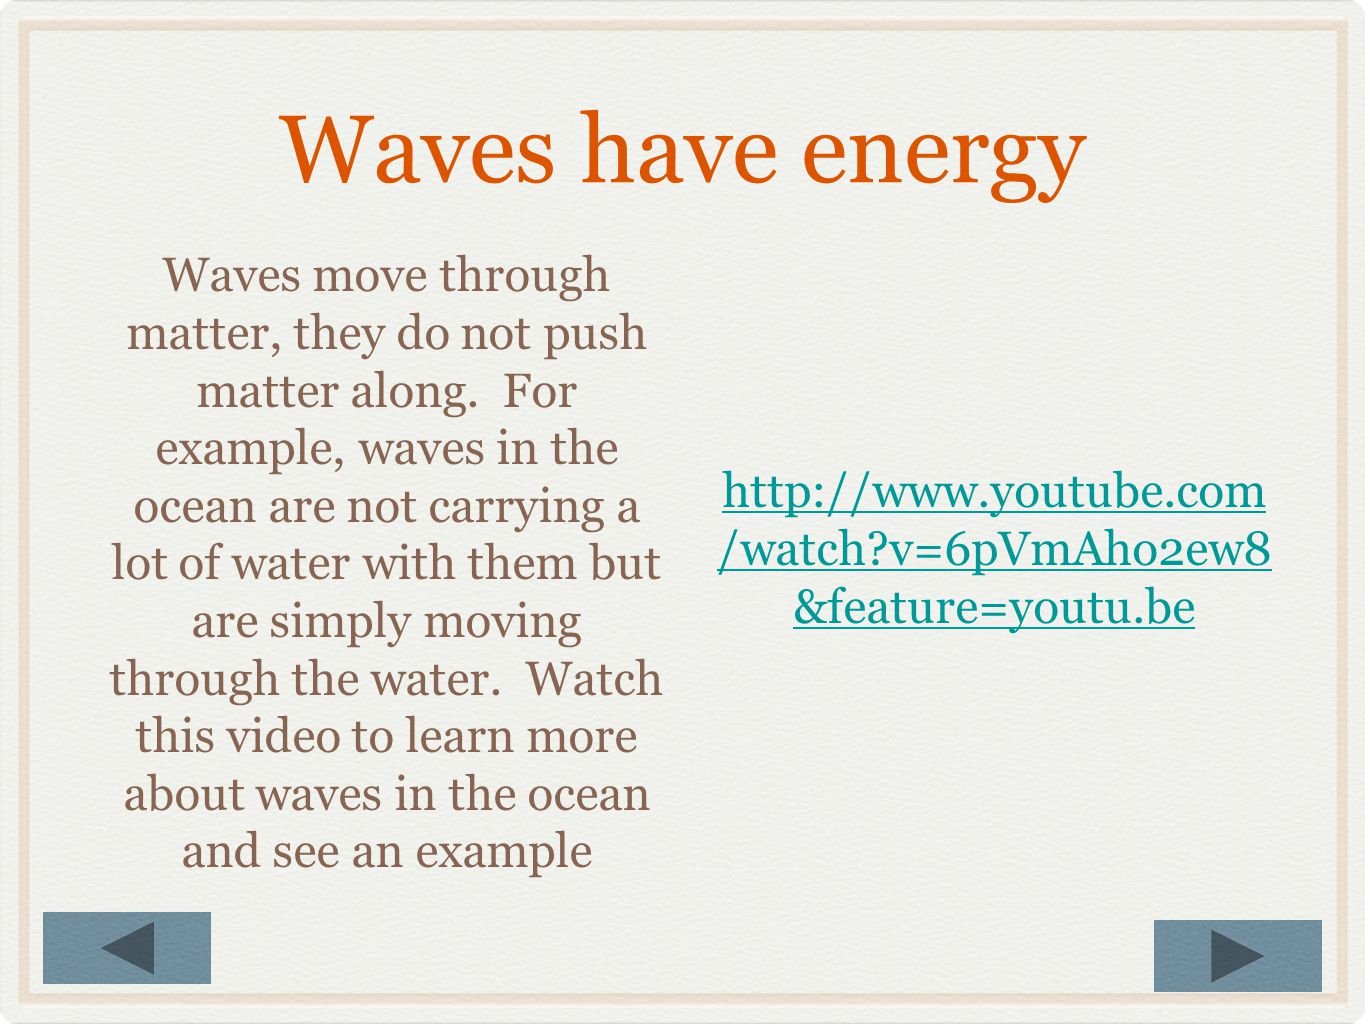 Waves have energy